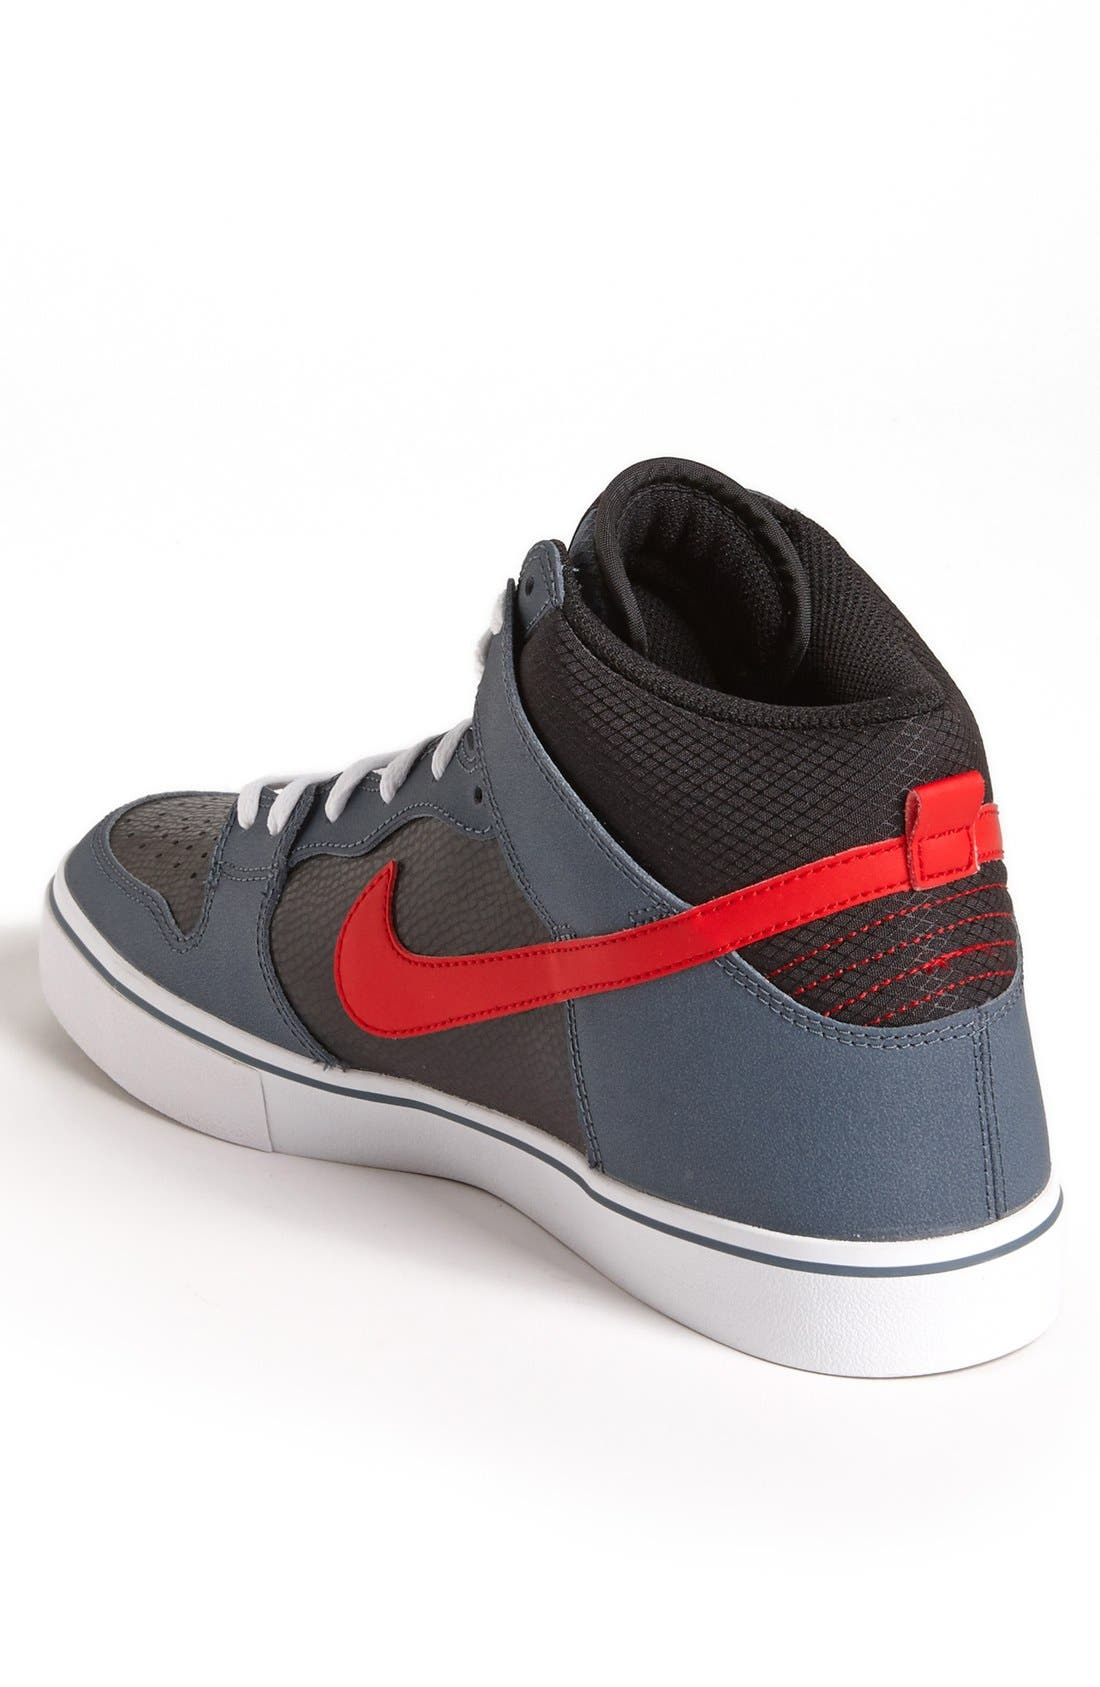 Alternate Image 2  - Nike 'Dunk High LR' Sneaker (Men)